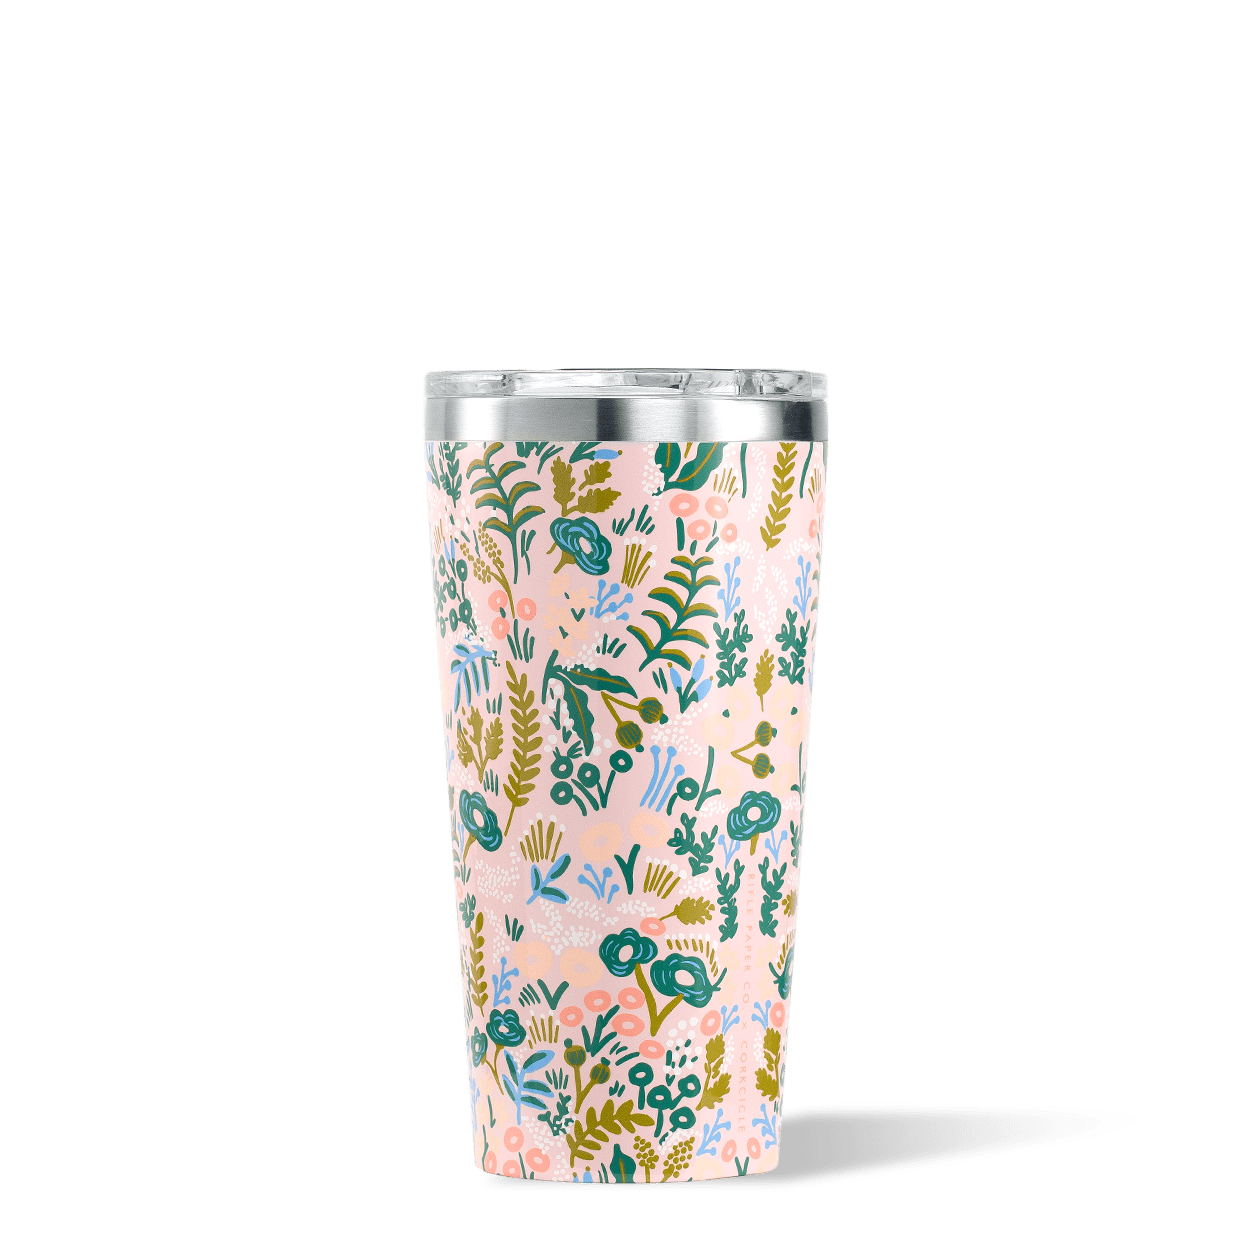 Tapestry Rifle Paper Co. x Corkcicle 16oz Tumbler